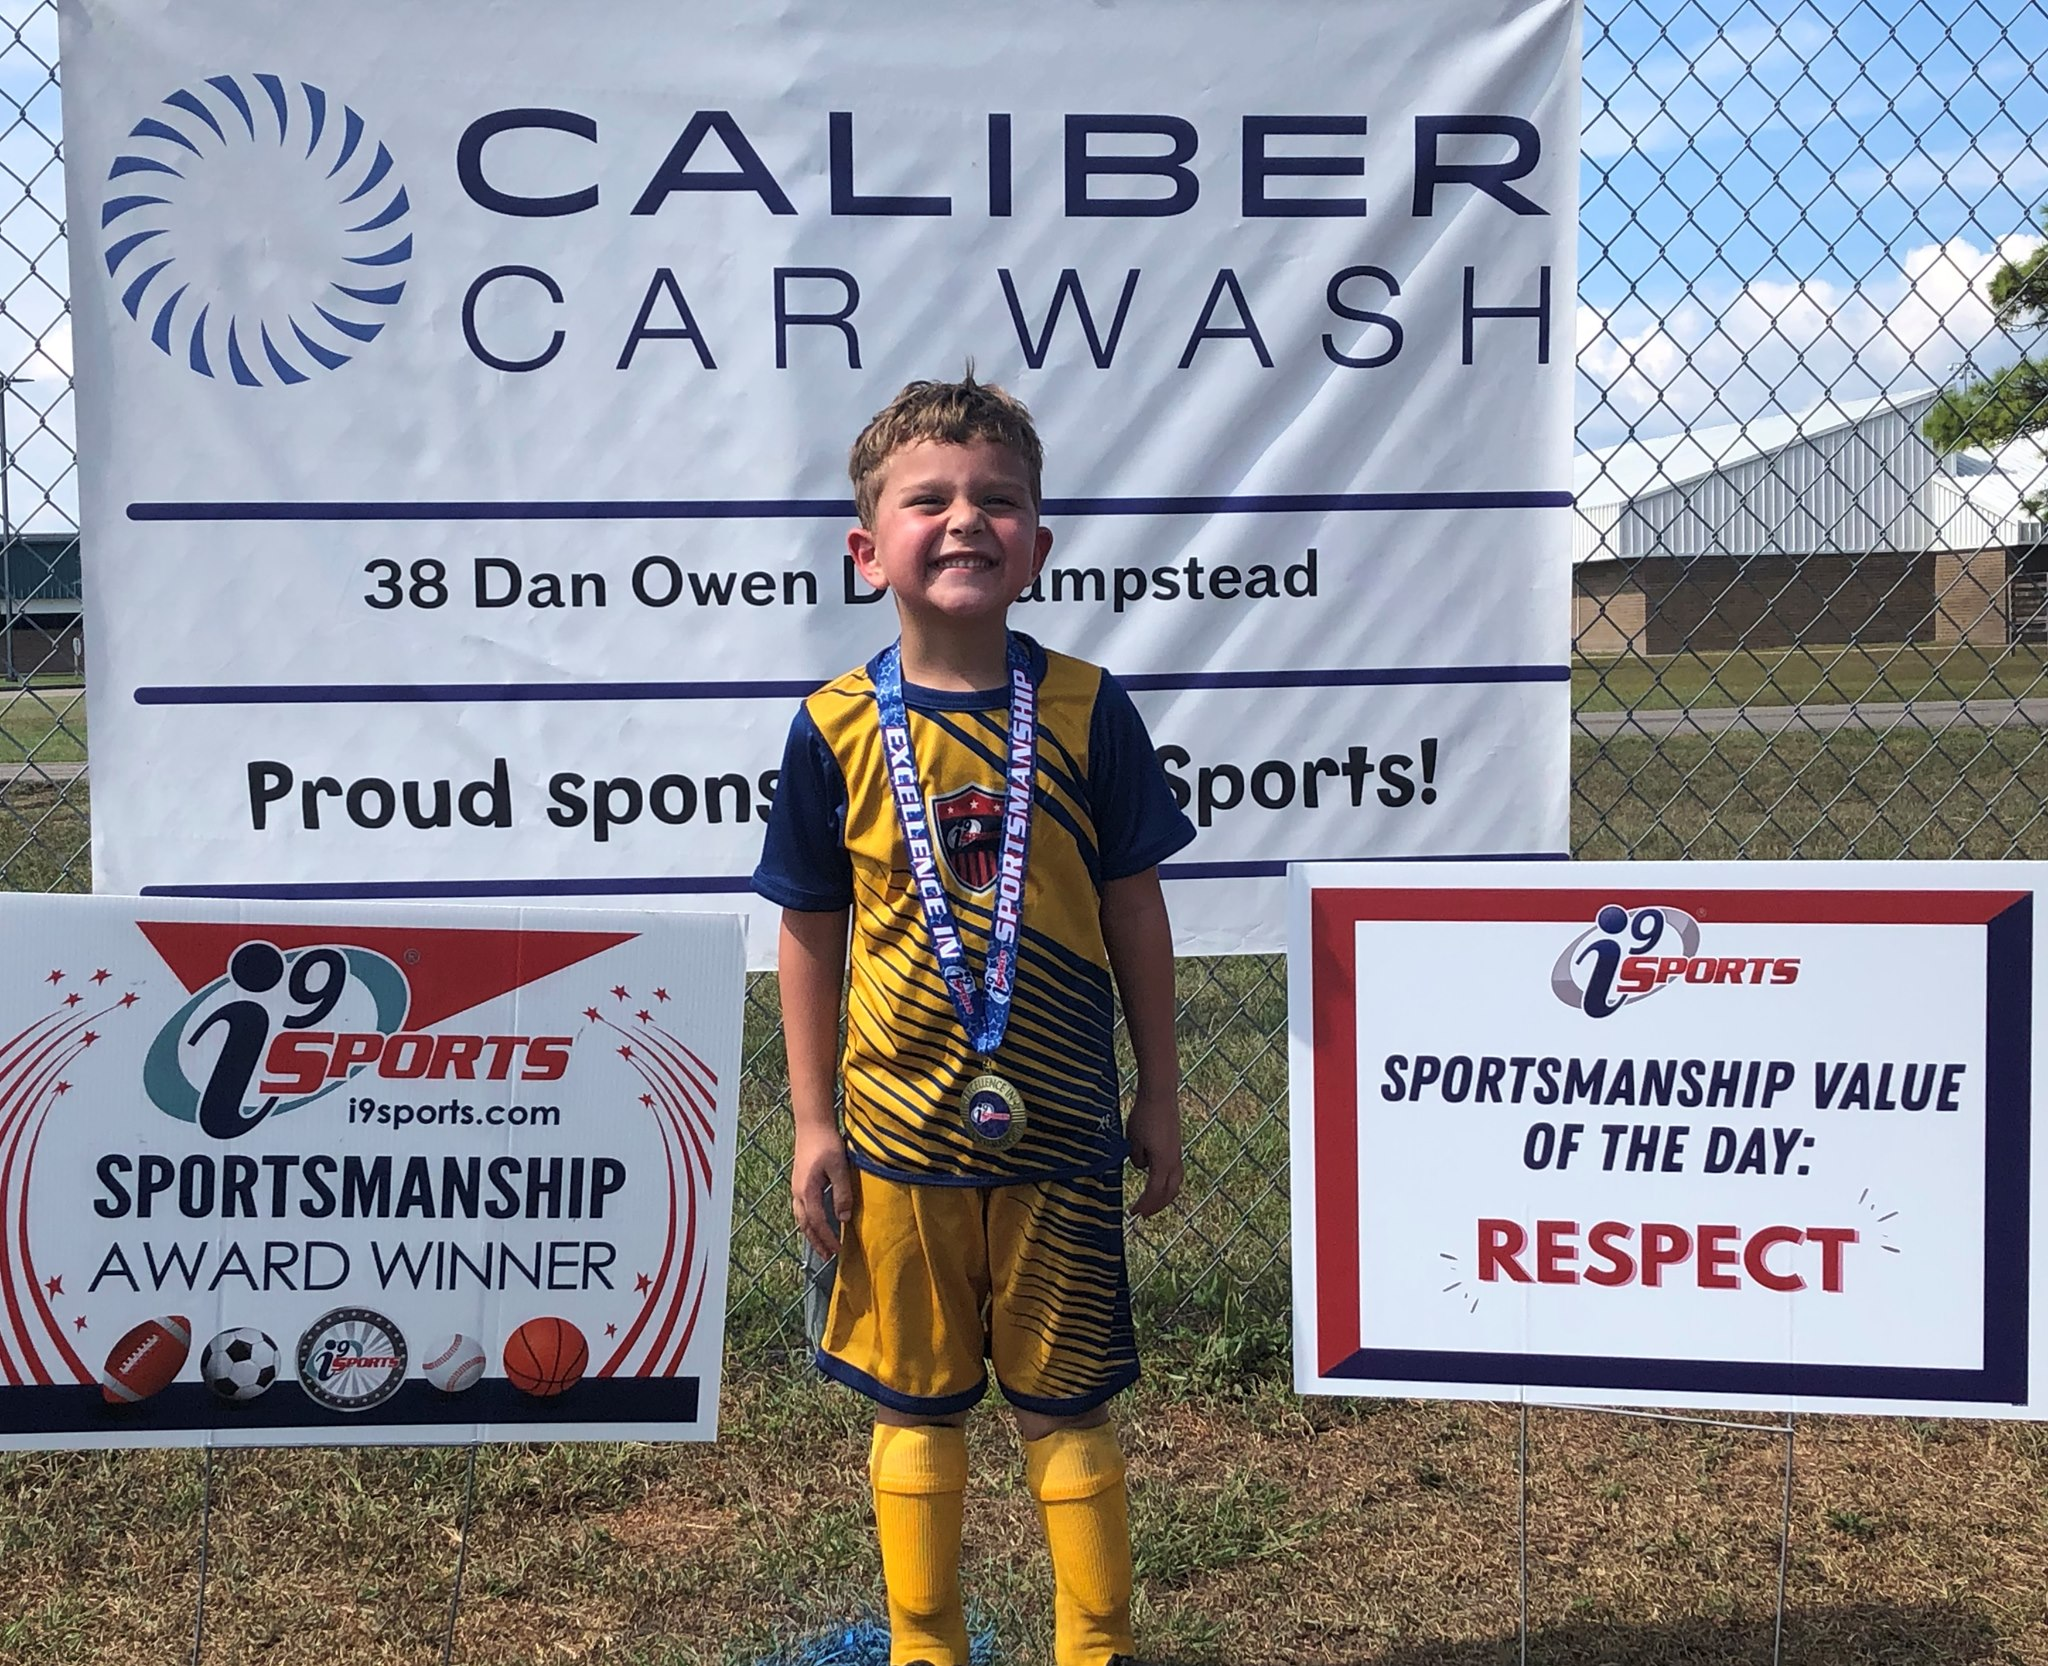 Caliber and i9 Sports Program Team Up To Give Back